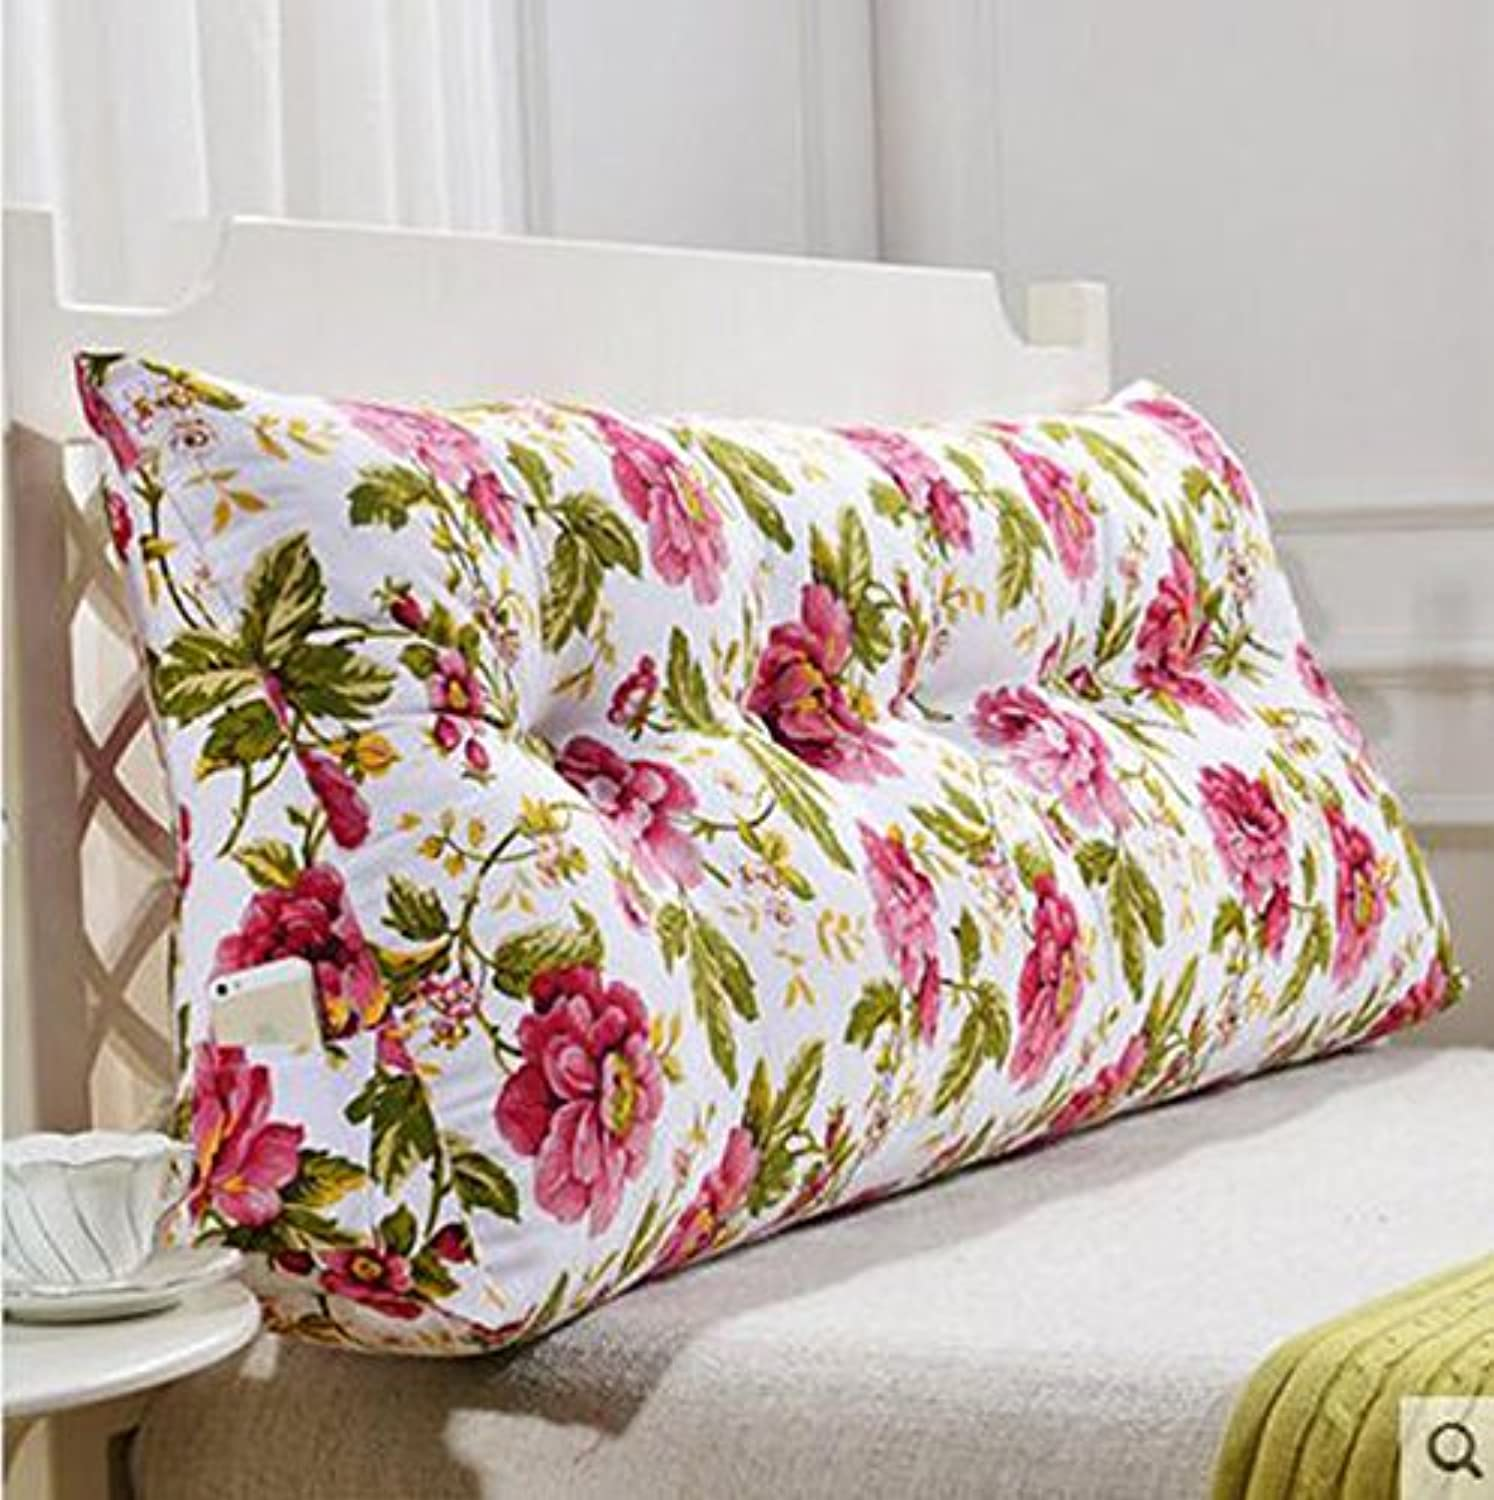 RFJJAL Sofa Cushions, Pillows, Double Soft Packs, Large Pillows, Bed Backs (color   A, Size   135cm)